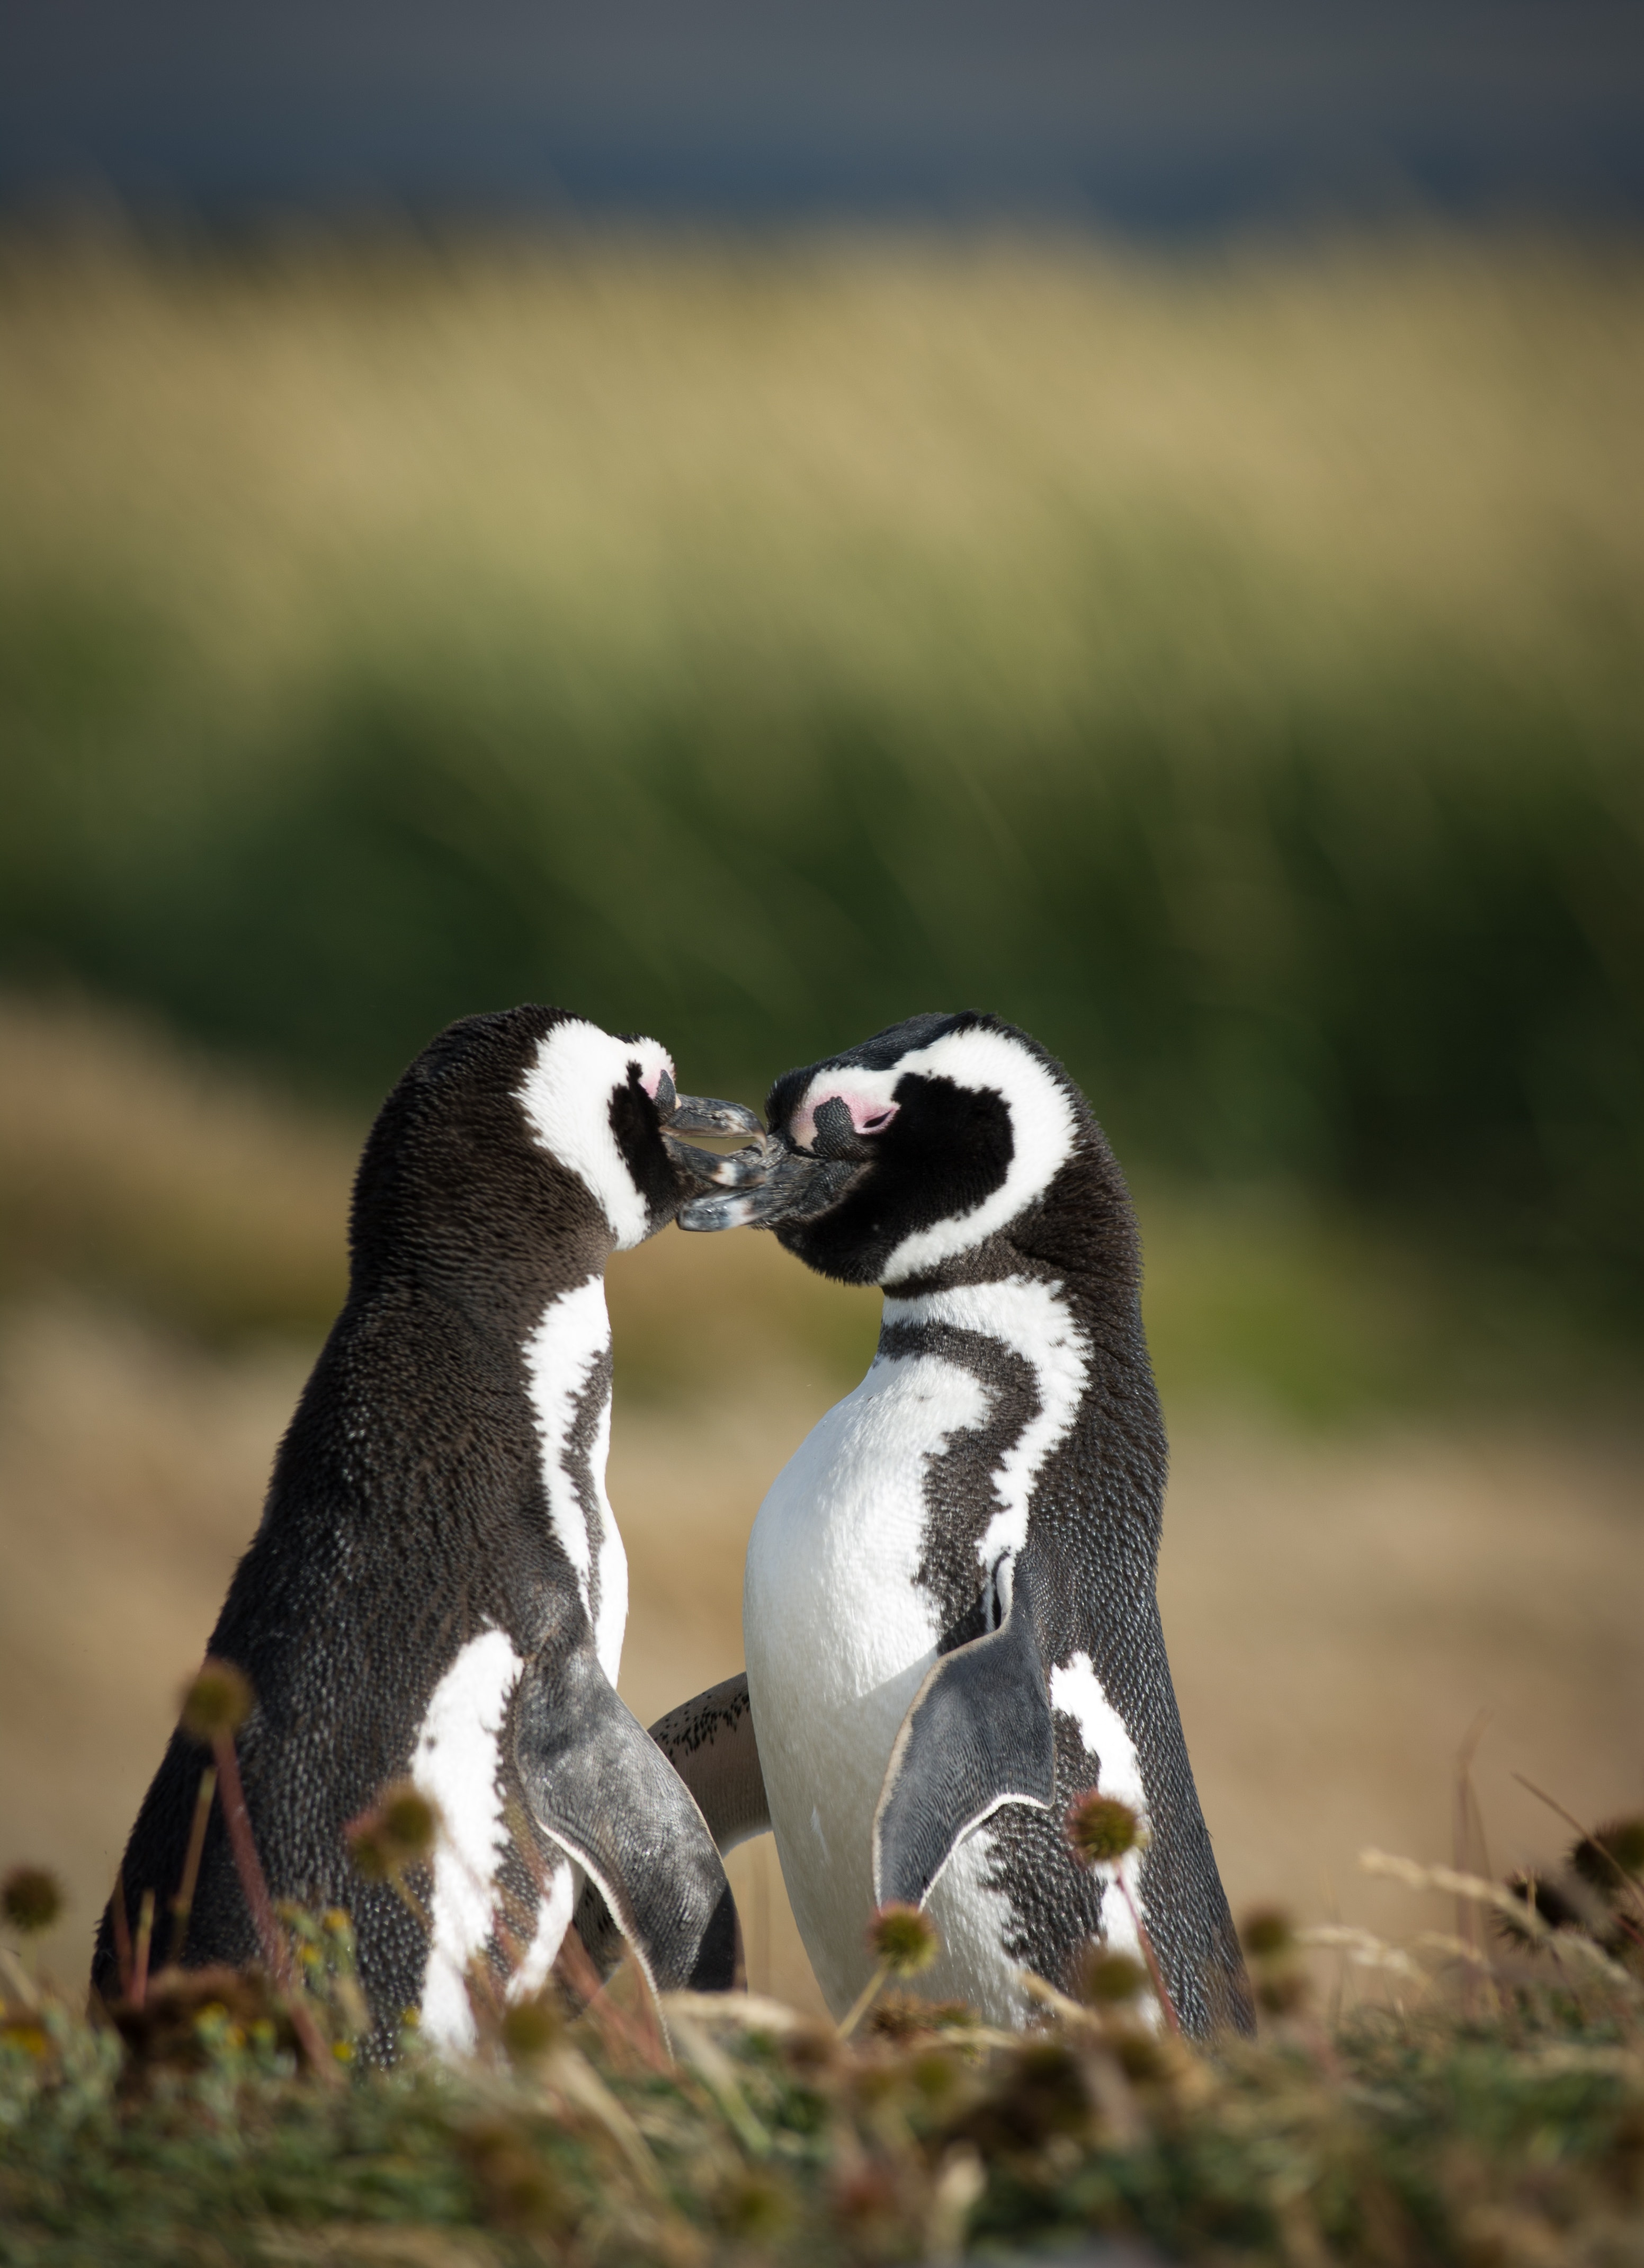 Adopt a penguin as a Valentine's Day gift